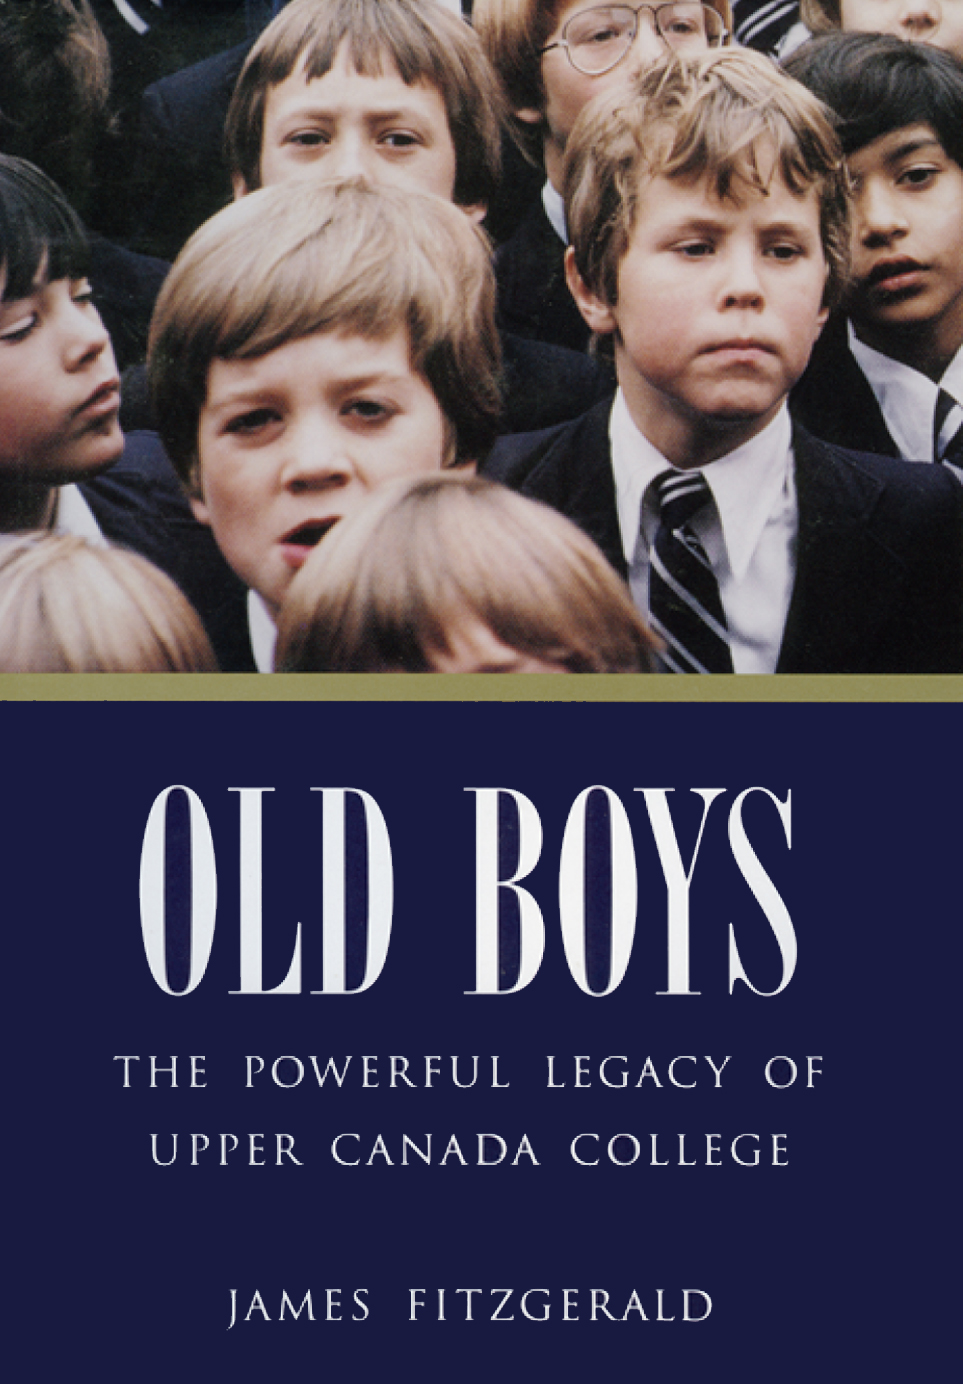 oldboys-cover.jpg